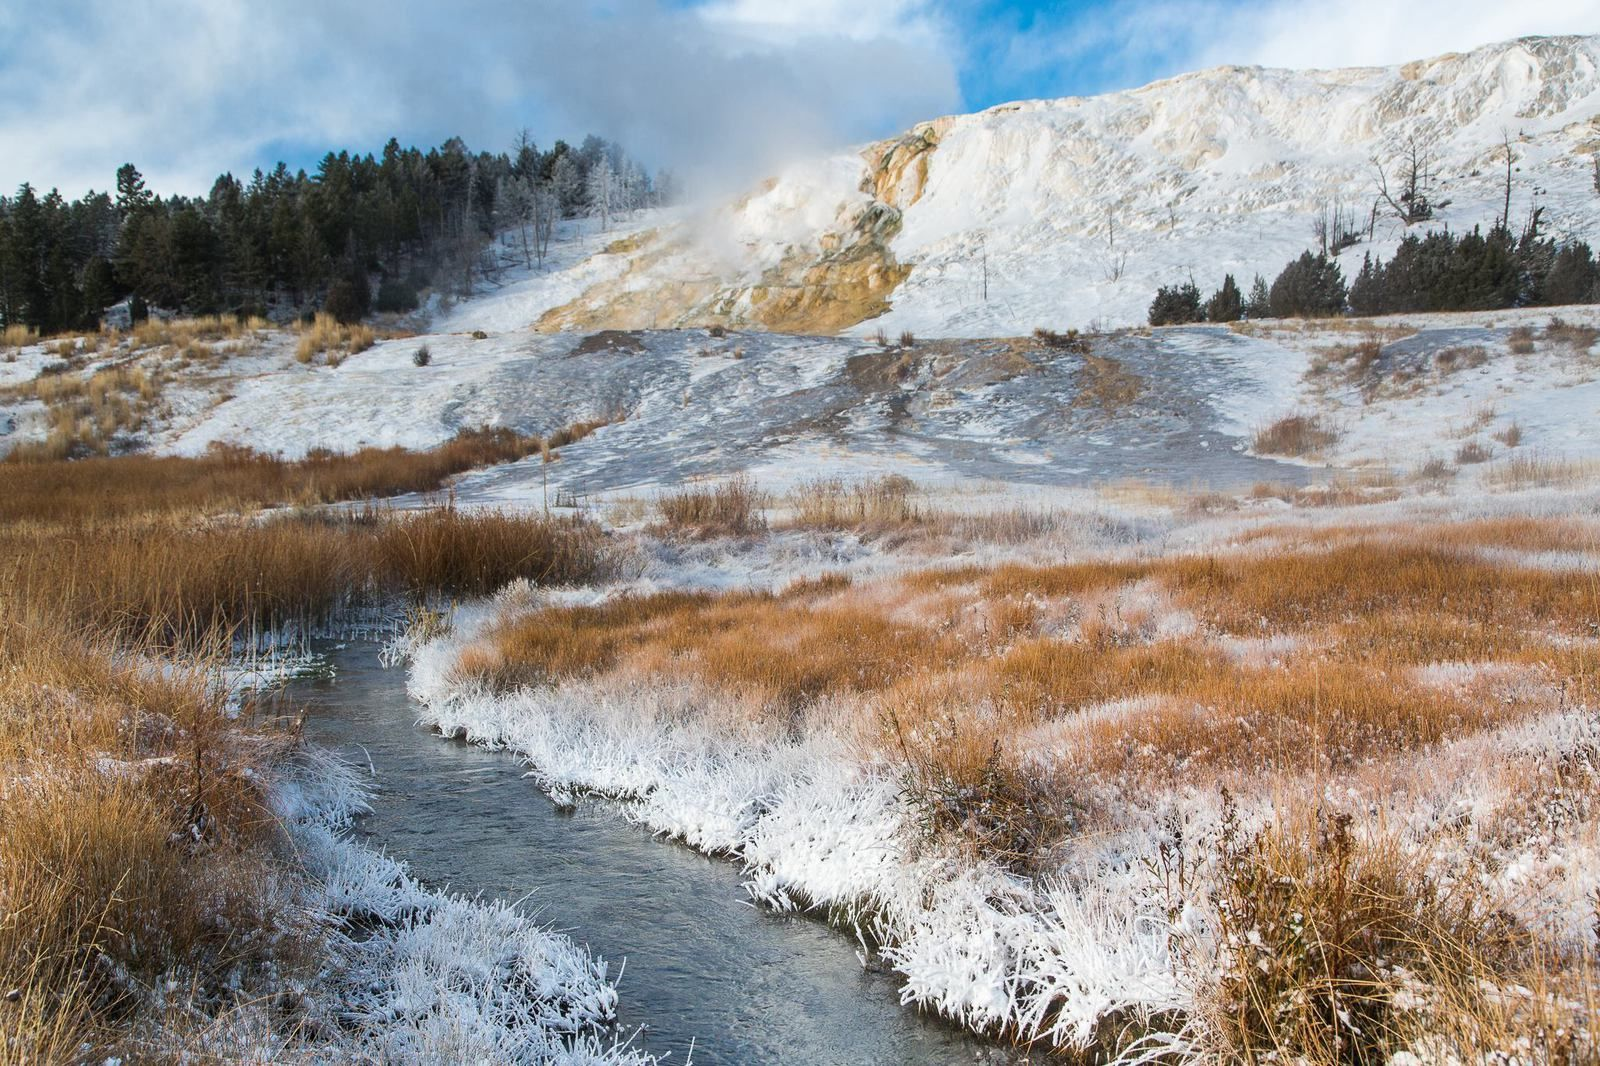 Mammoth Hot Springs sous la neige et la givre - photo Yellowstone National Park 2014